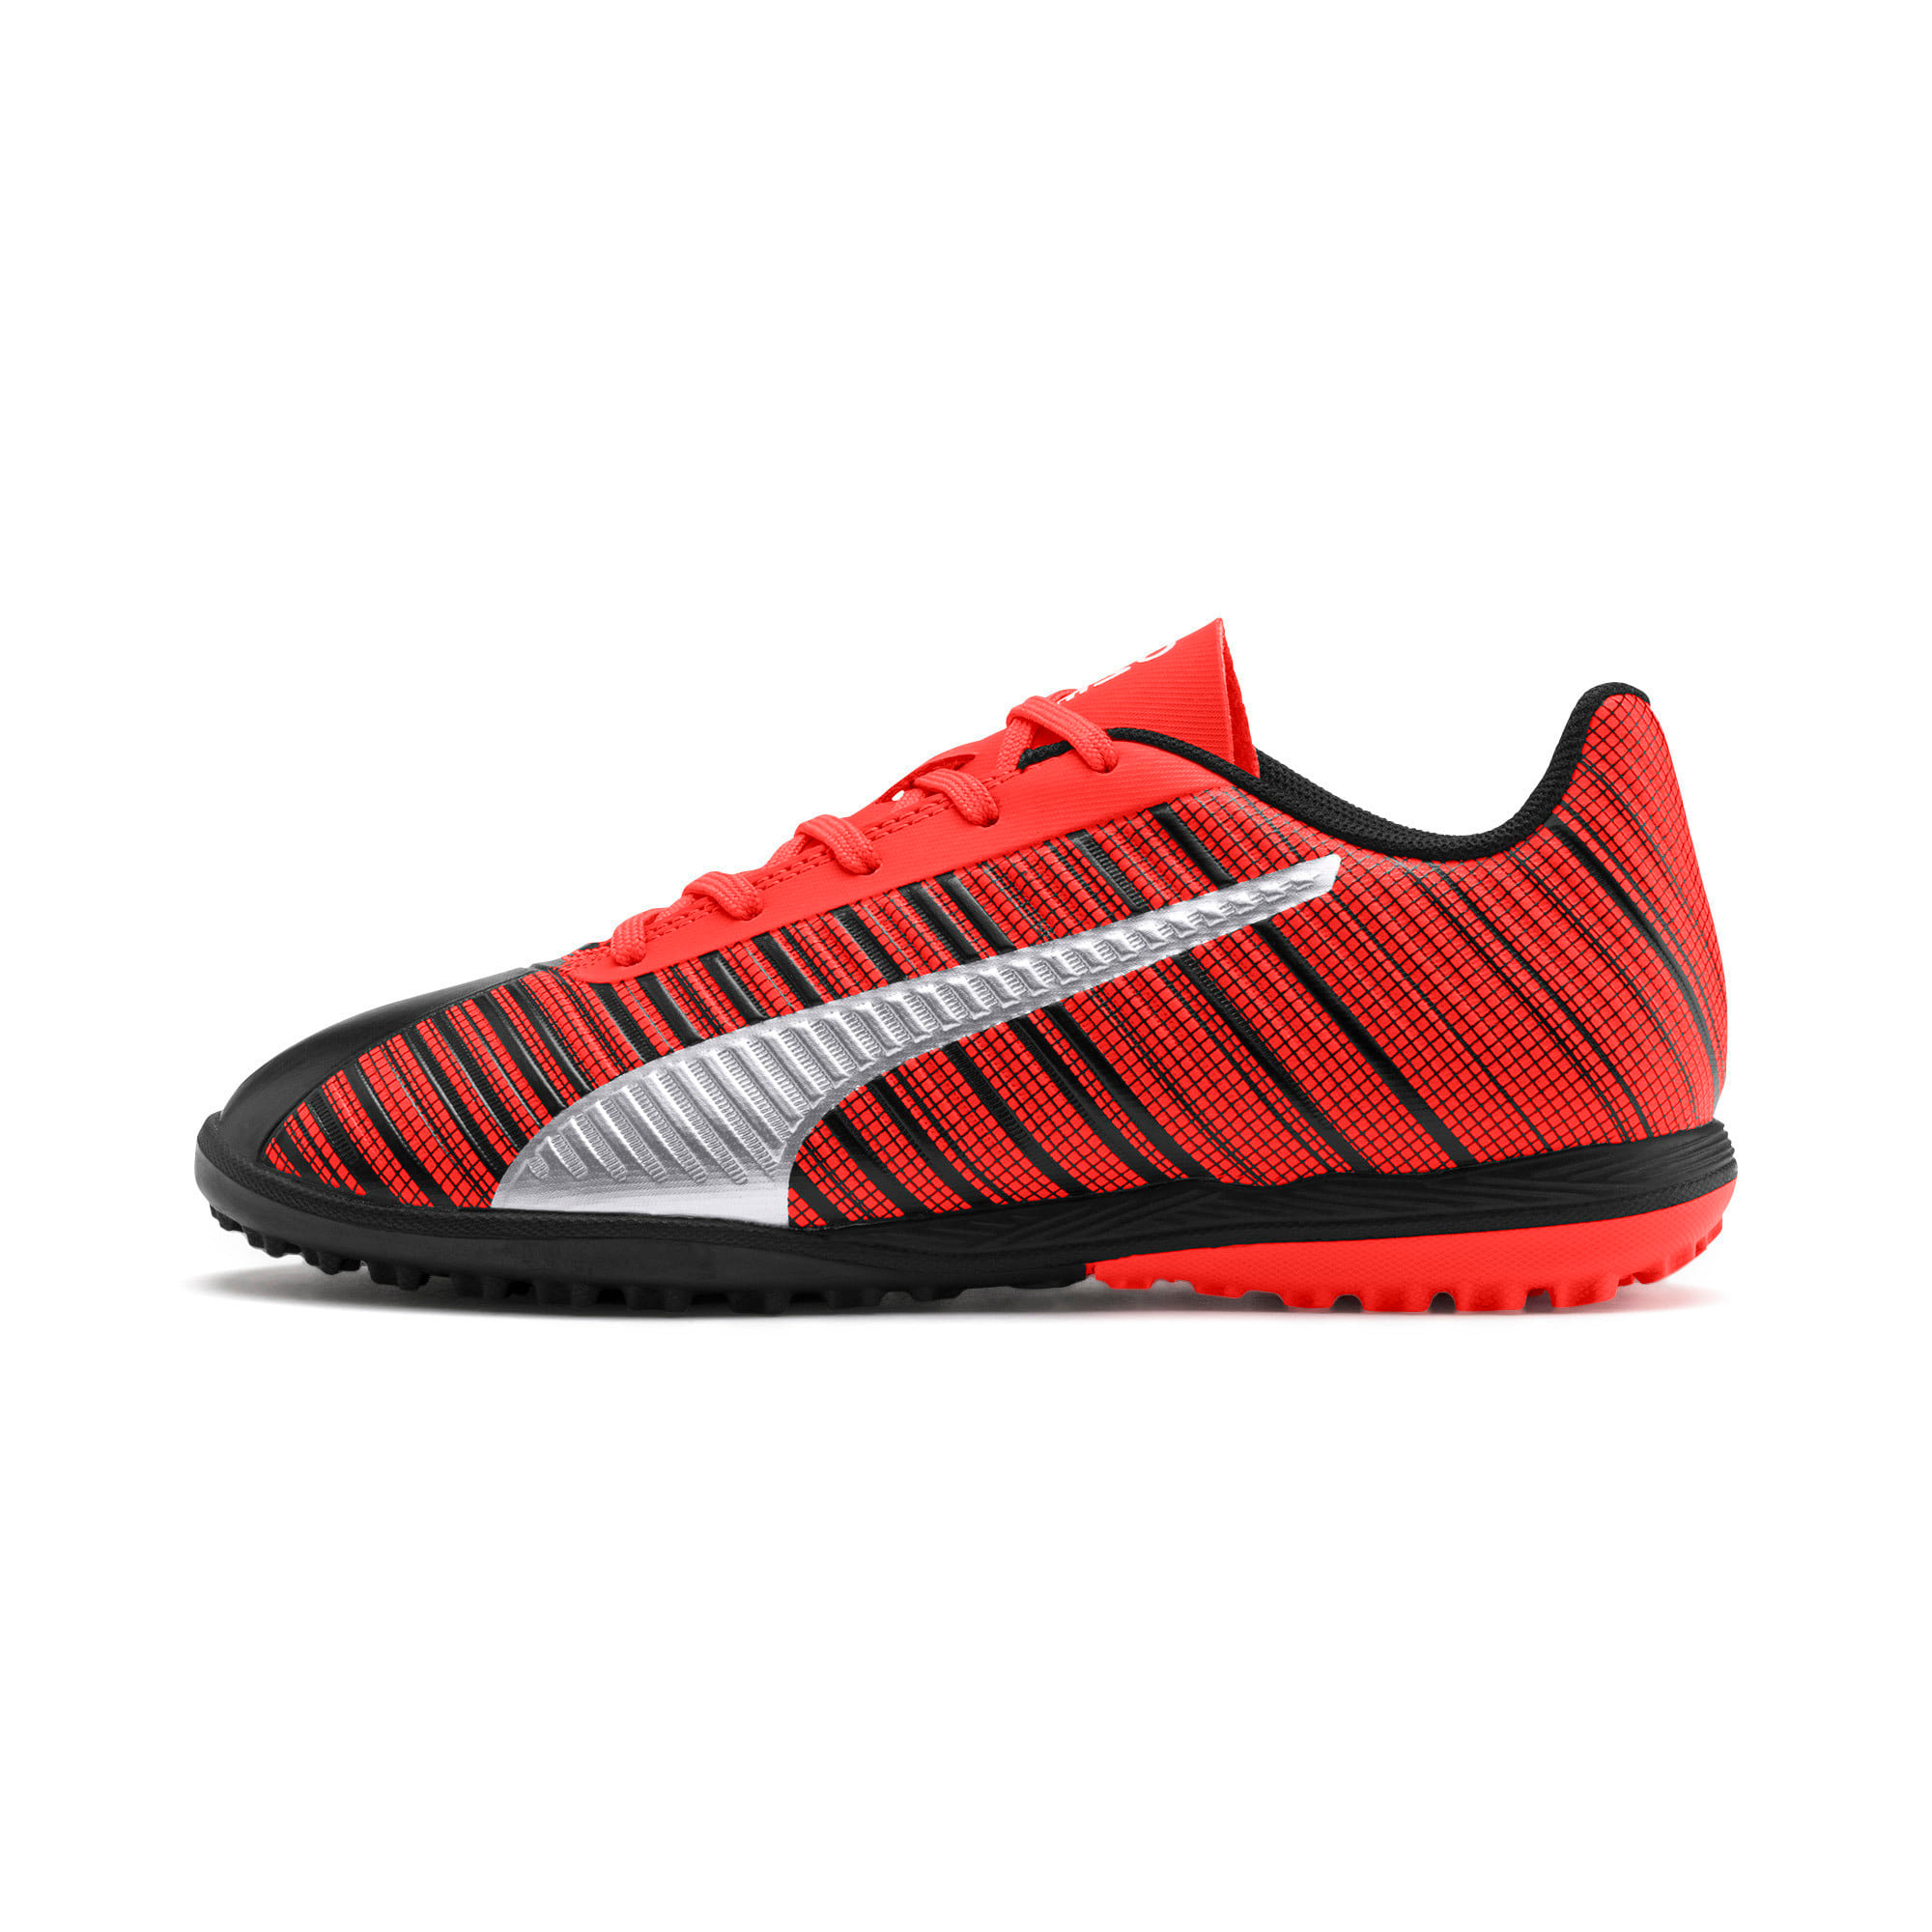 Thumbnail 1 of PUMA ONE 5.4 TT Soccer Shoes JR, Black-Nrgy Red-Aged Silver, medium